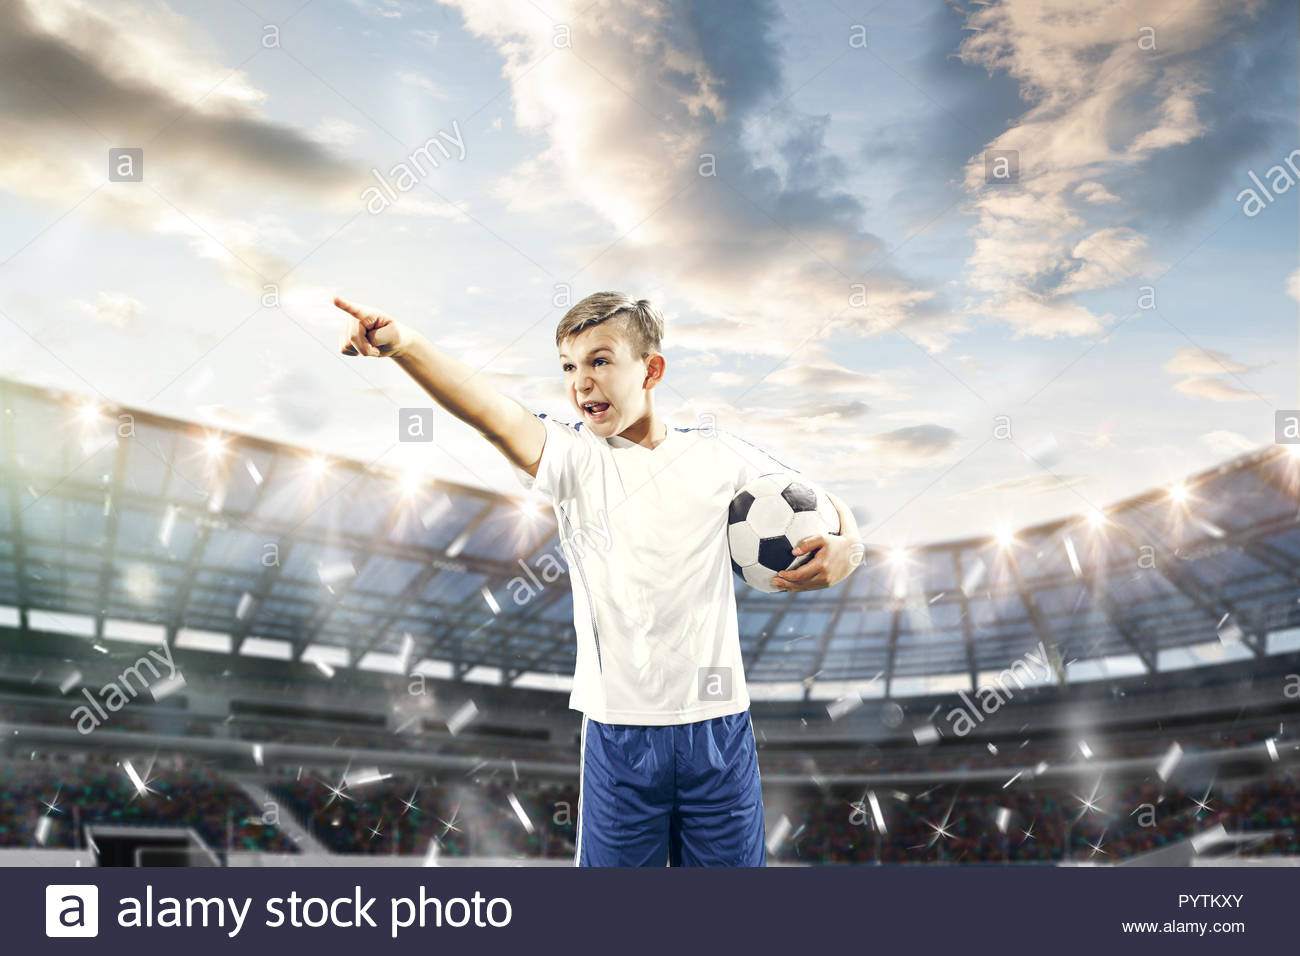 Young boy with soccer ball doing flying kick at stadium football 1300x956